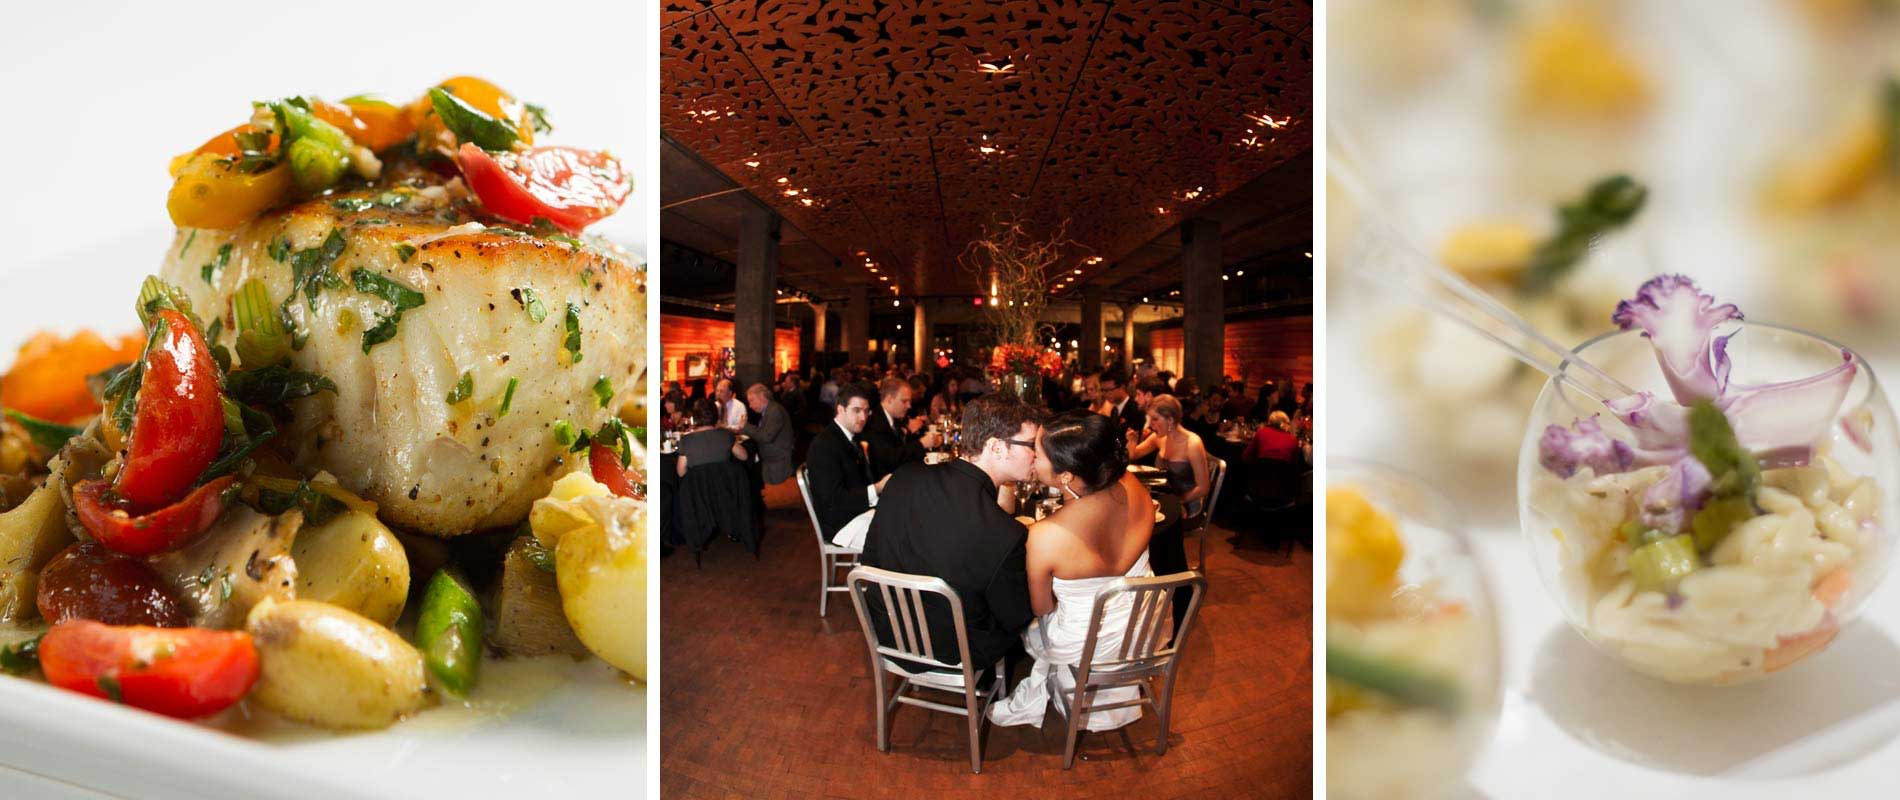 damico catering at mill city museum weddings and events